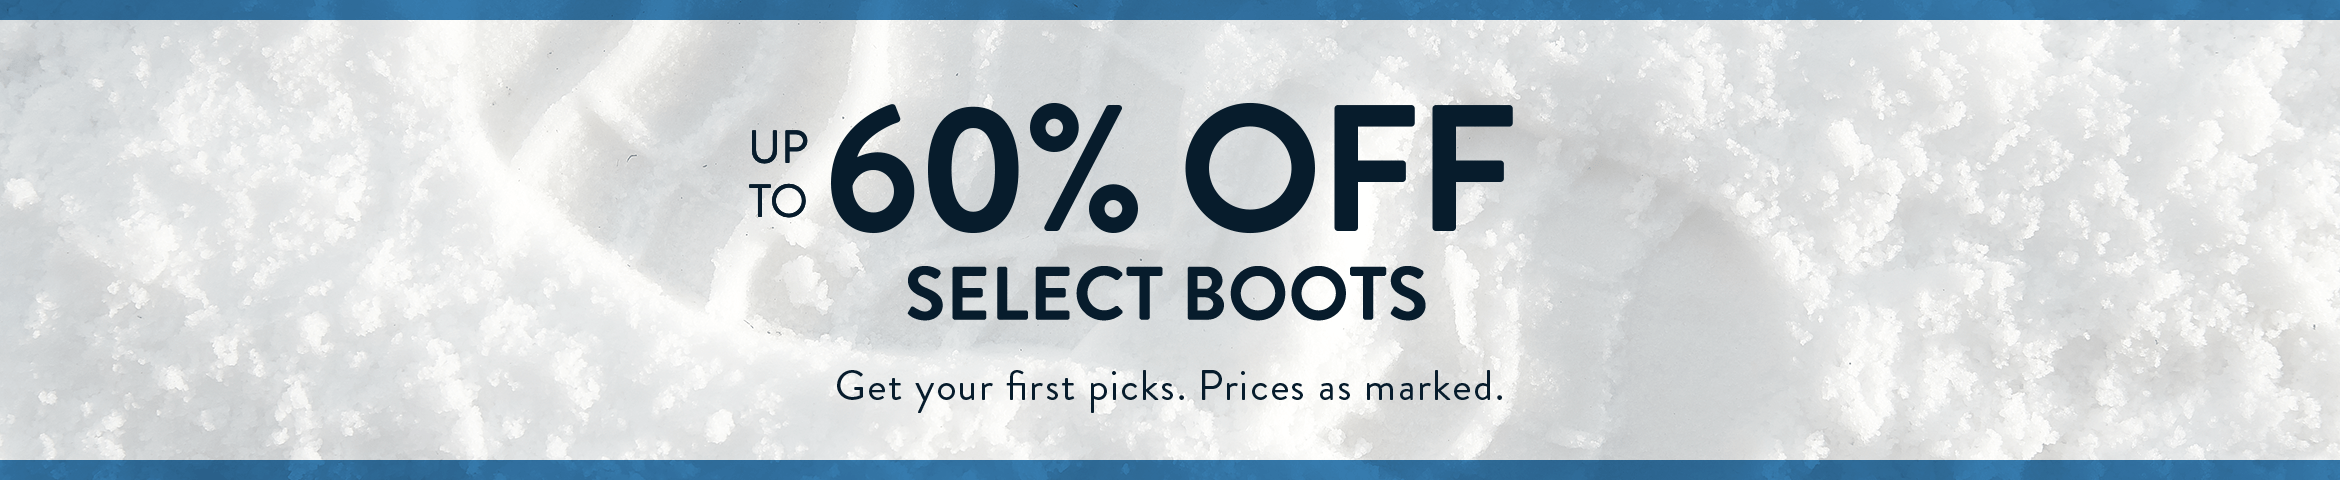 Up to 60% Off select boots. Get your first picks. Prices as marked.